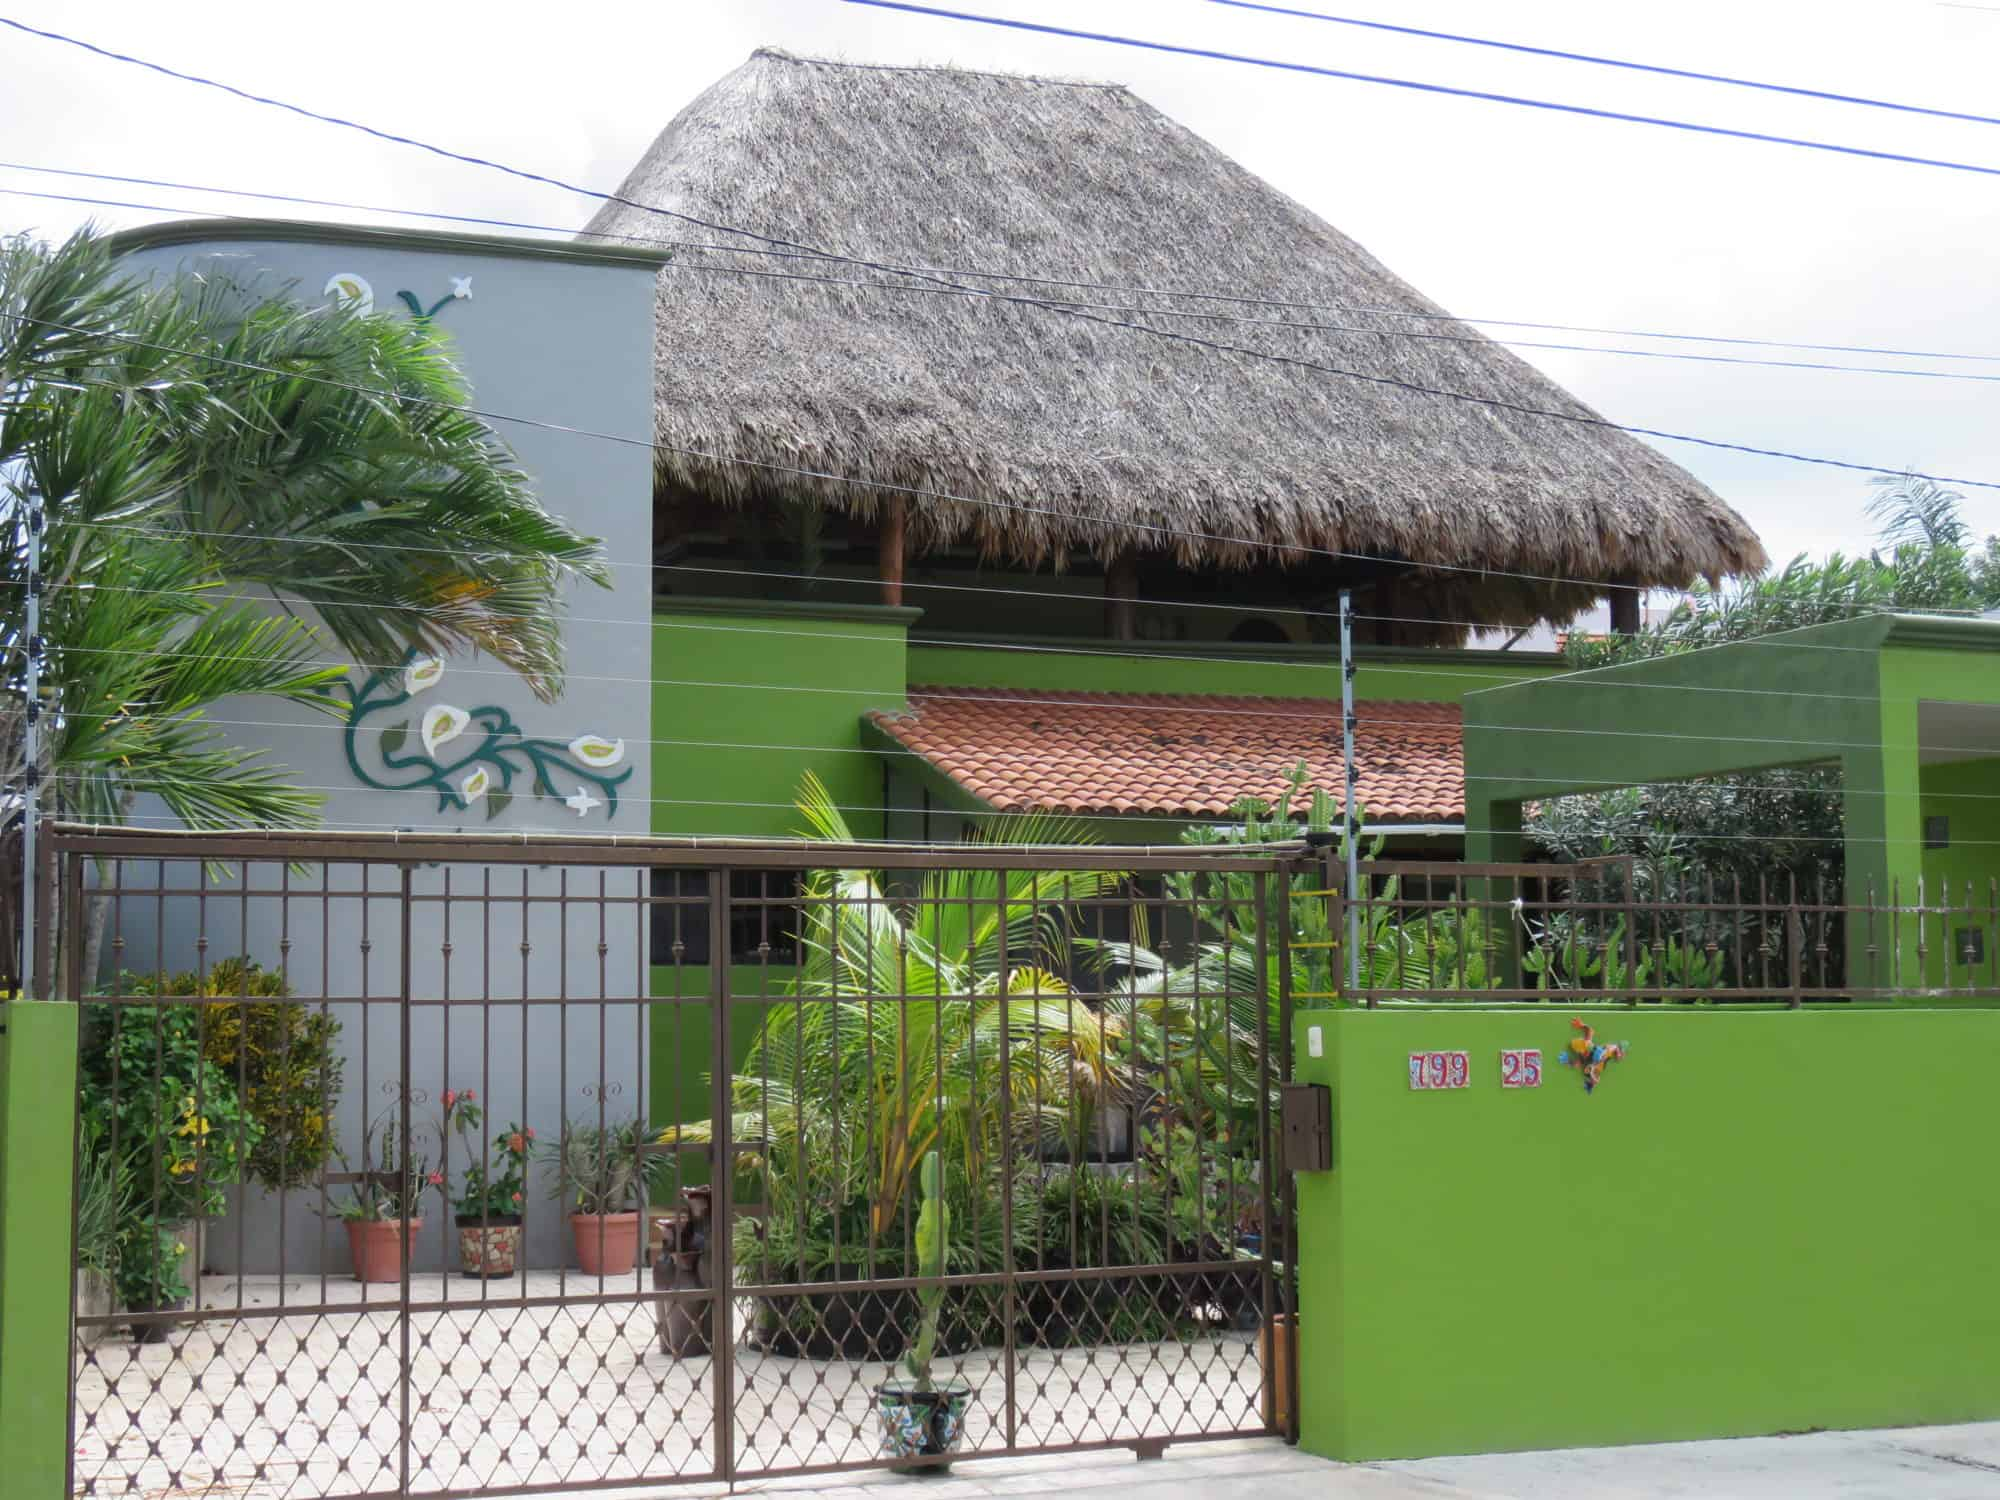 The street view, vacation rental condo in Cozumel, Mexico